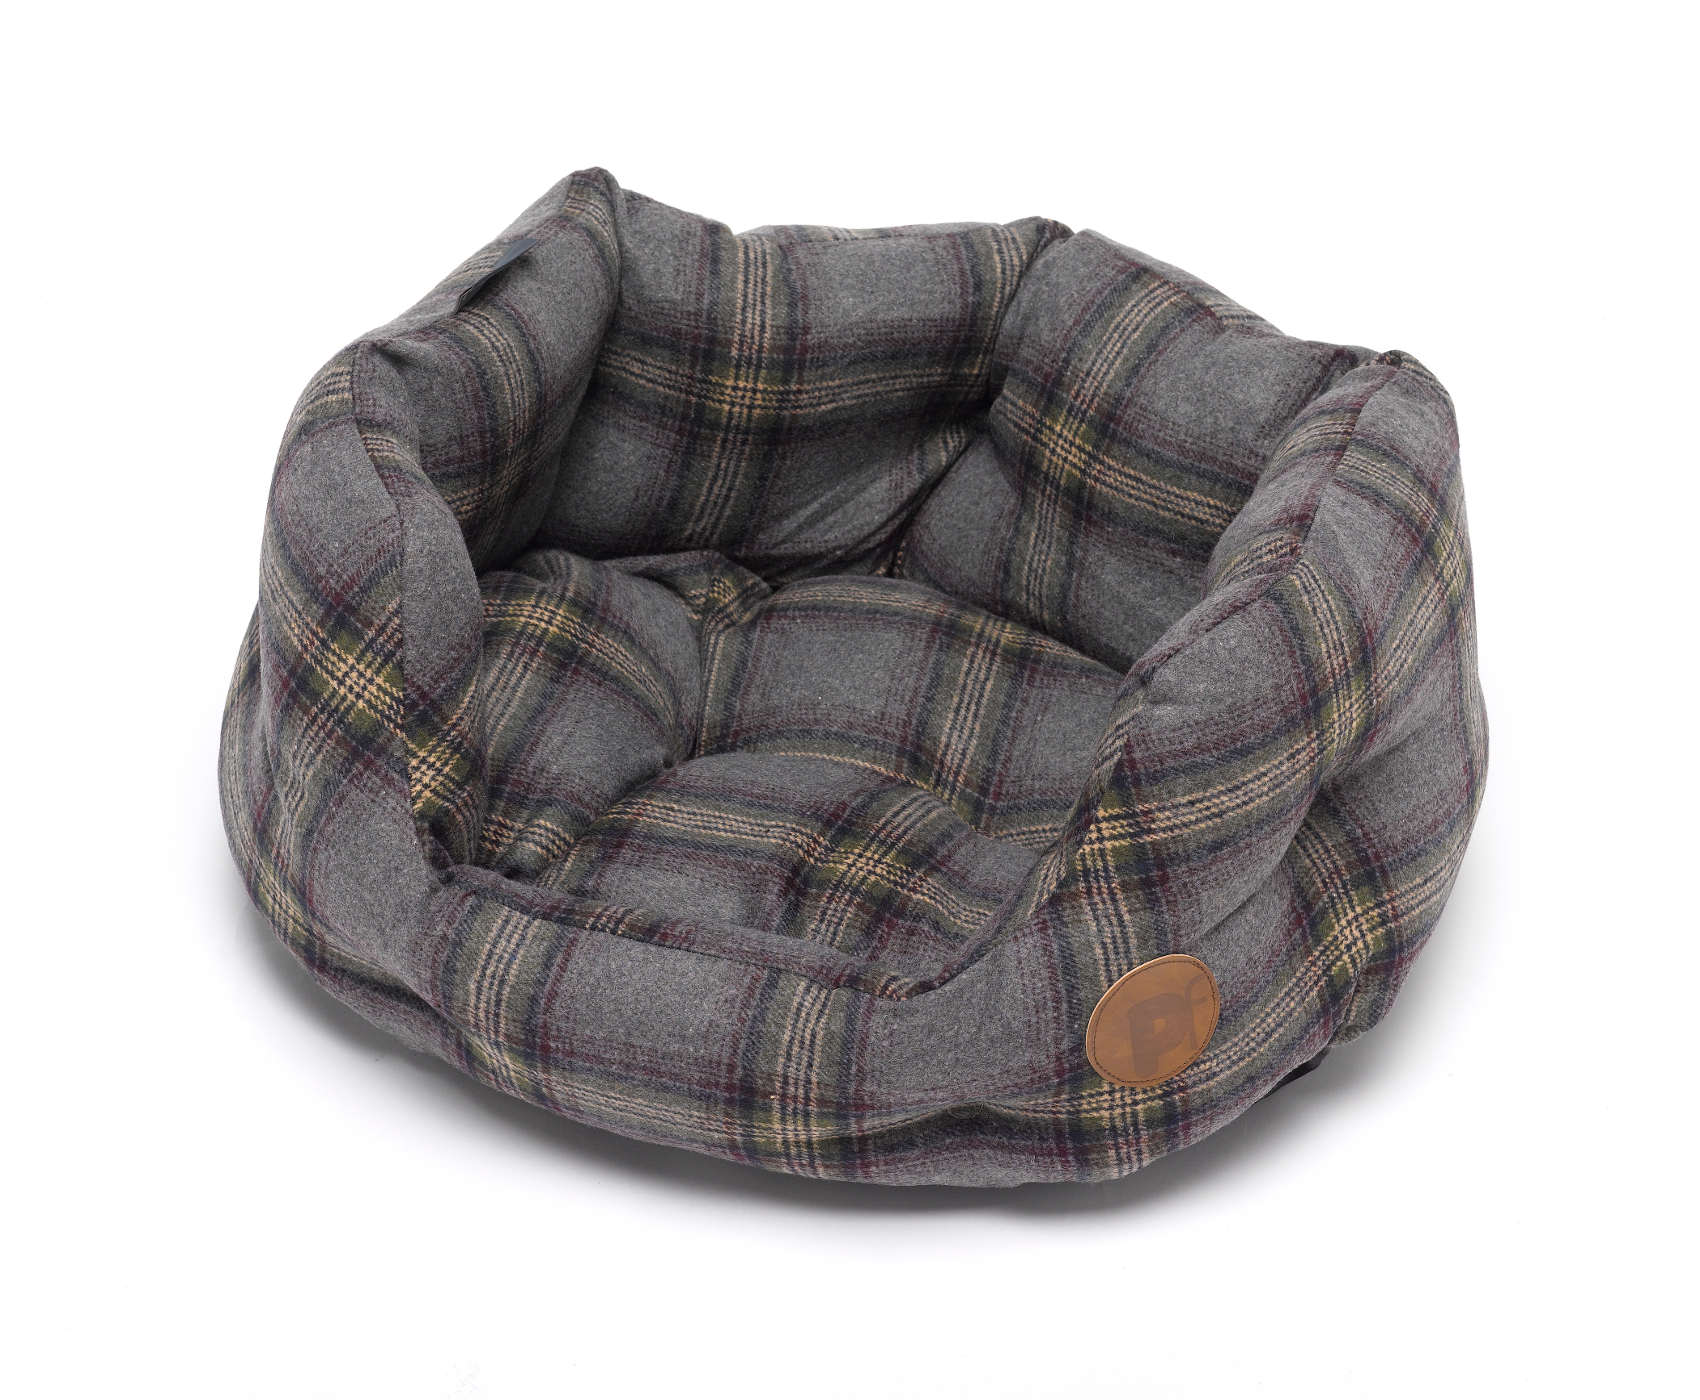 Petface Grey Tweed Check Oval Dog Bed